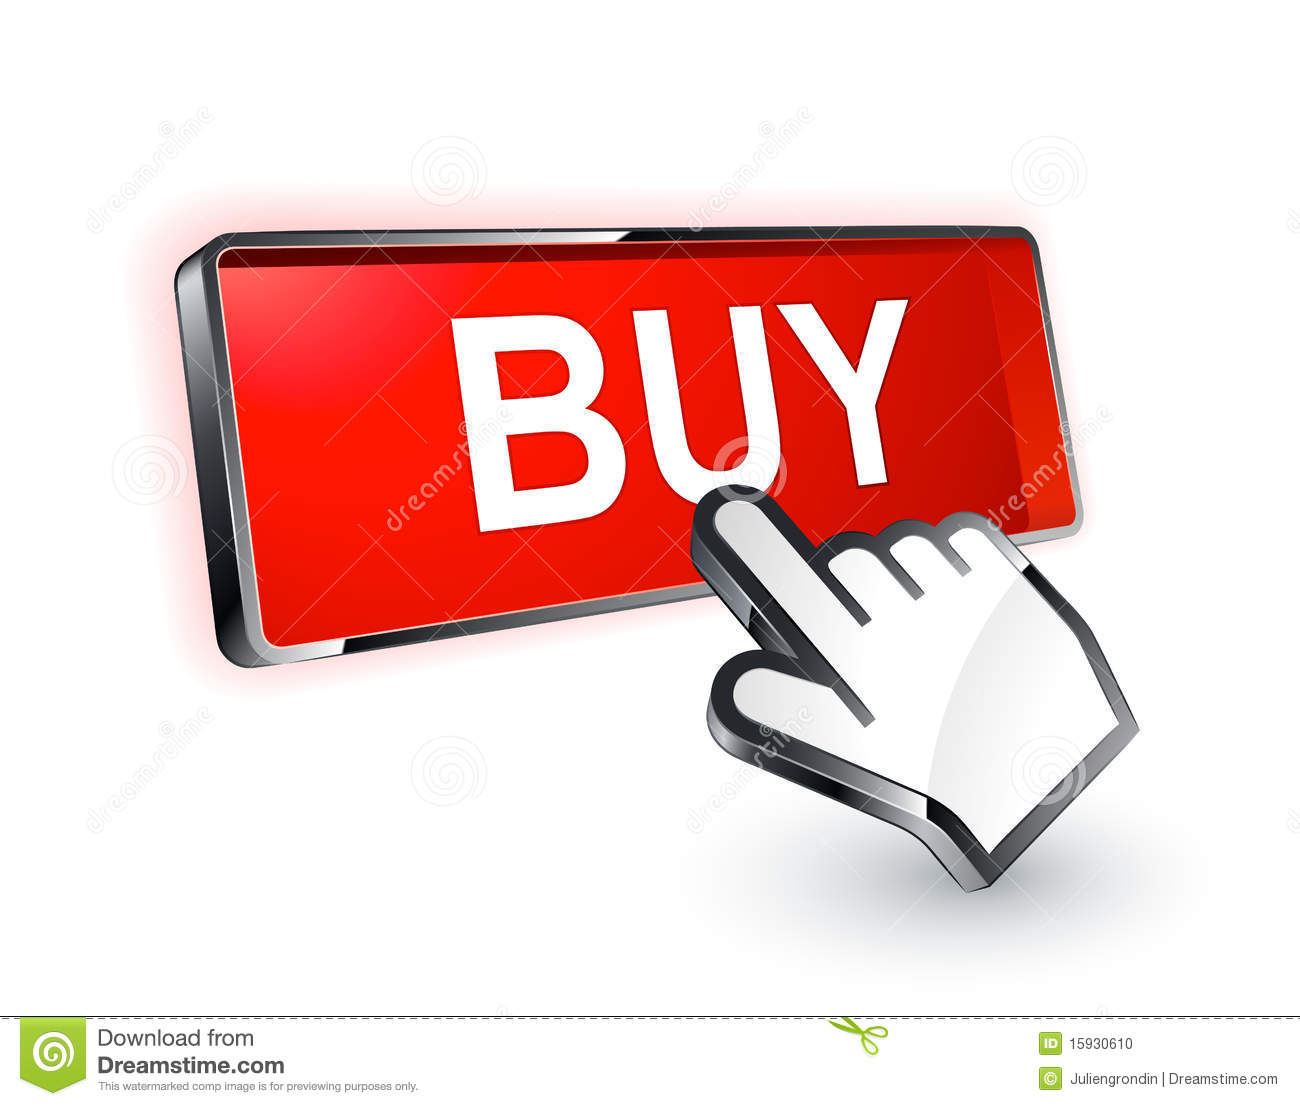 Buy Button Stock Photo - Image: 15930610: www.dreamstime.com/stock-photo-buy-button-image15930610